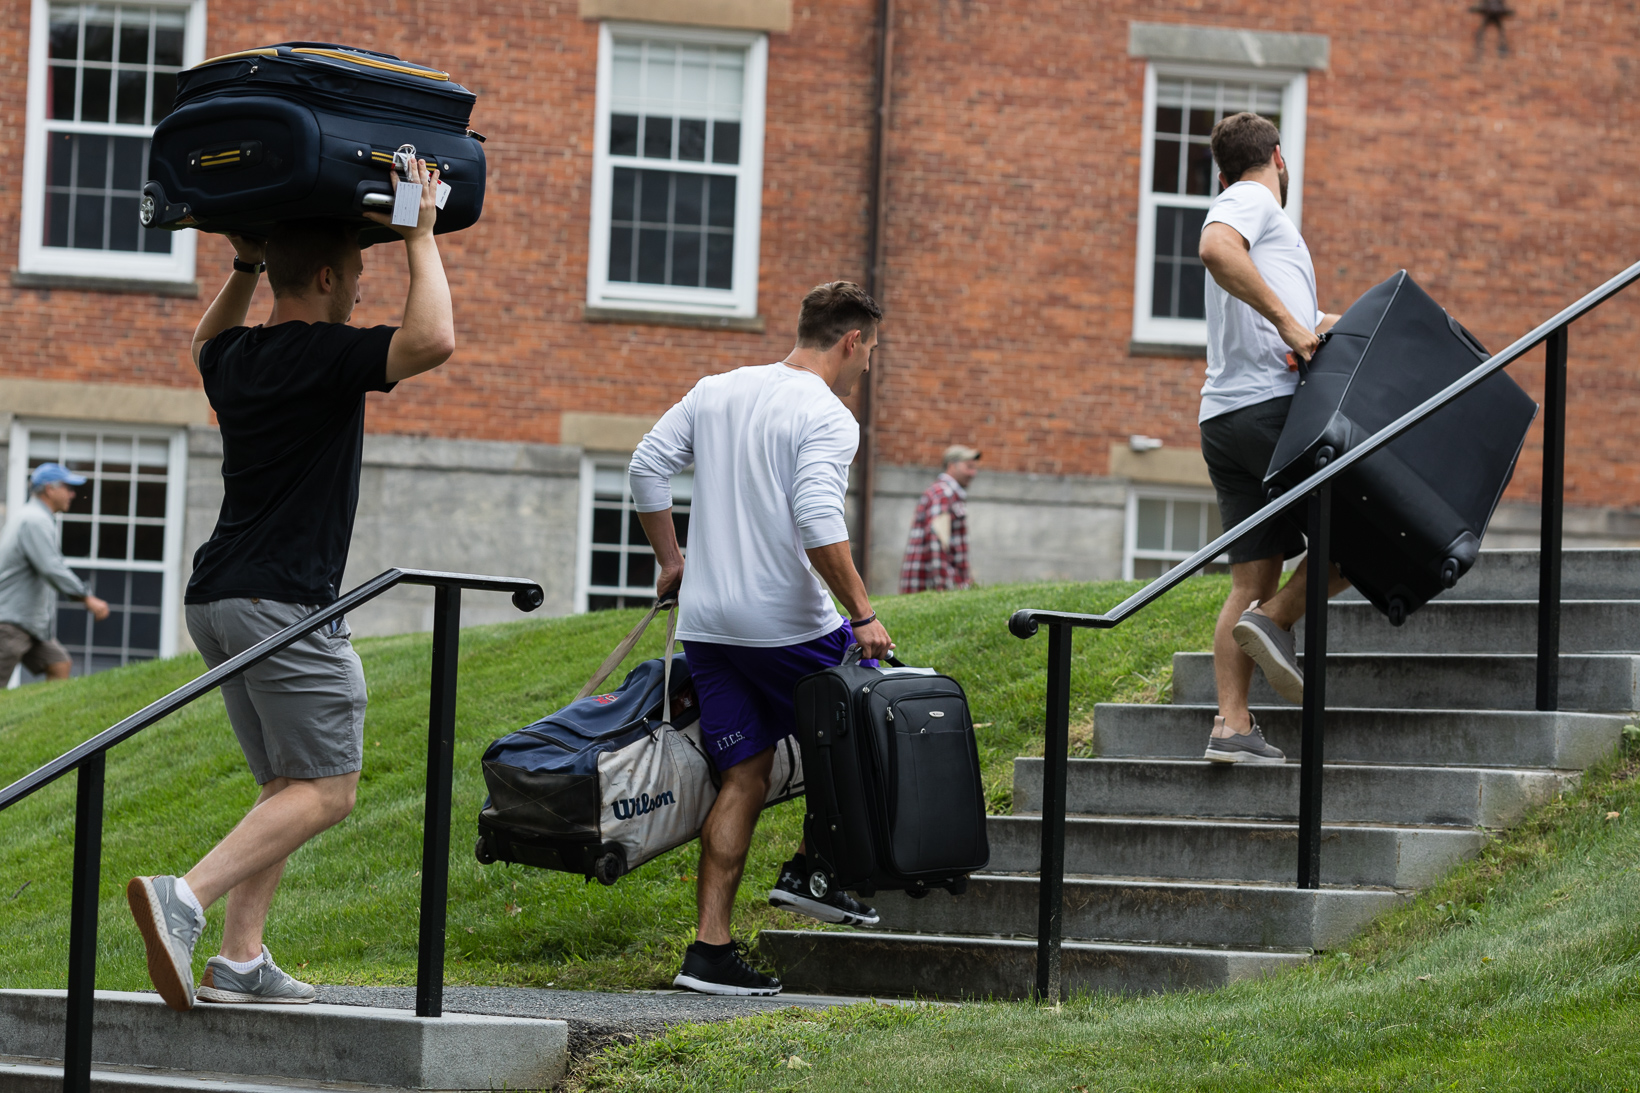 Students carrying large suitcases up a set of stairs.